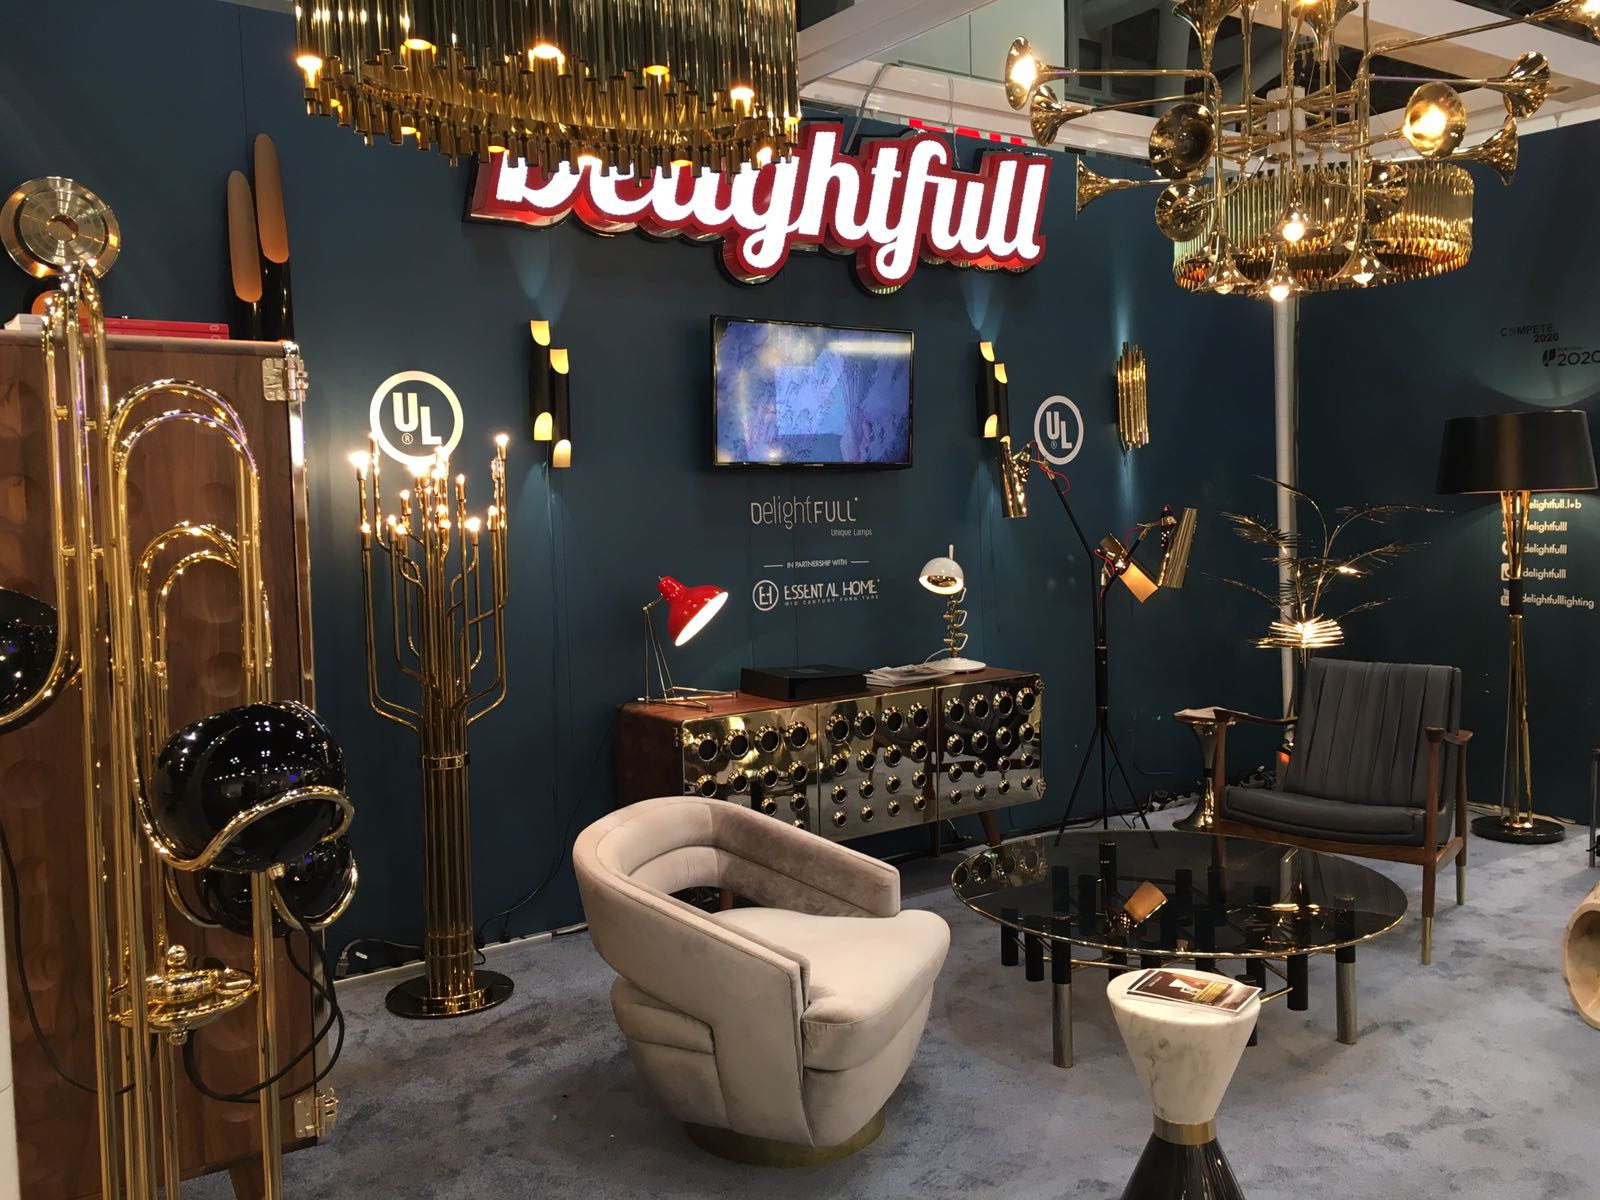 Highlights from BDNY 2016 bdny 2016 Highlights from BDNY 2016  DDDEFDBA1B8EB07F942D88C1176E743920CB2D0CC4F44190C2 pimgpsh fullsize distr